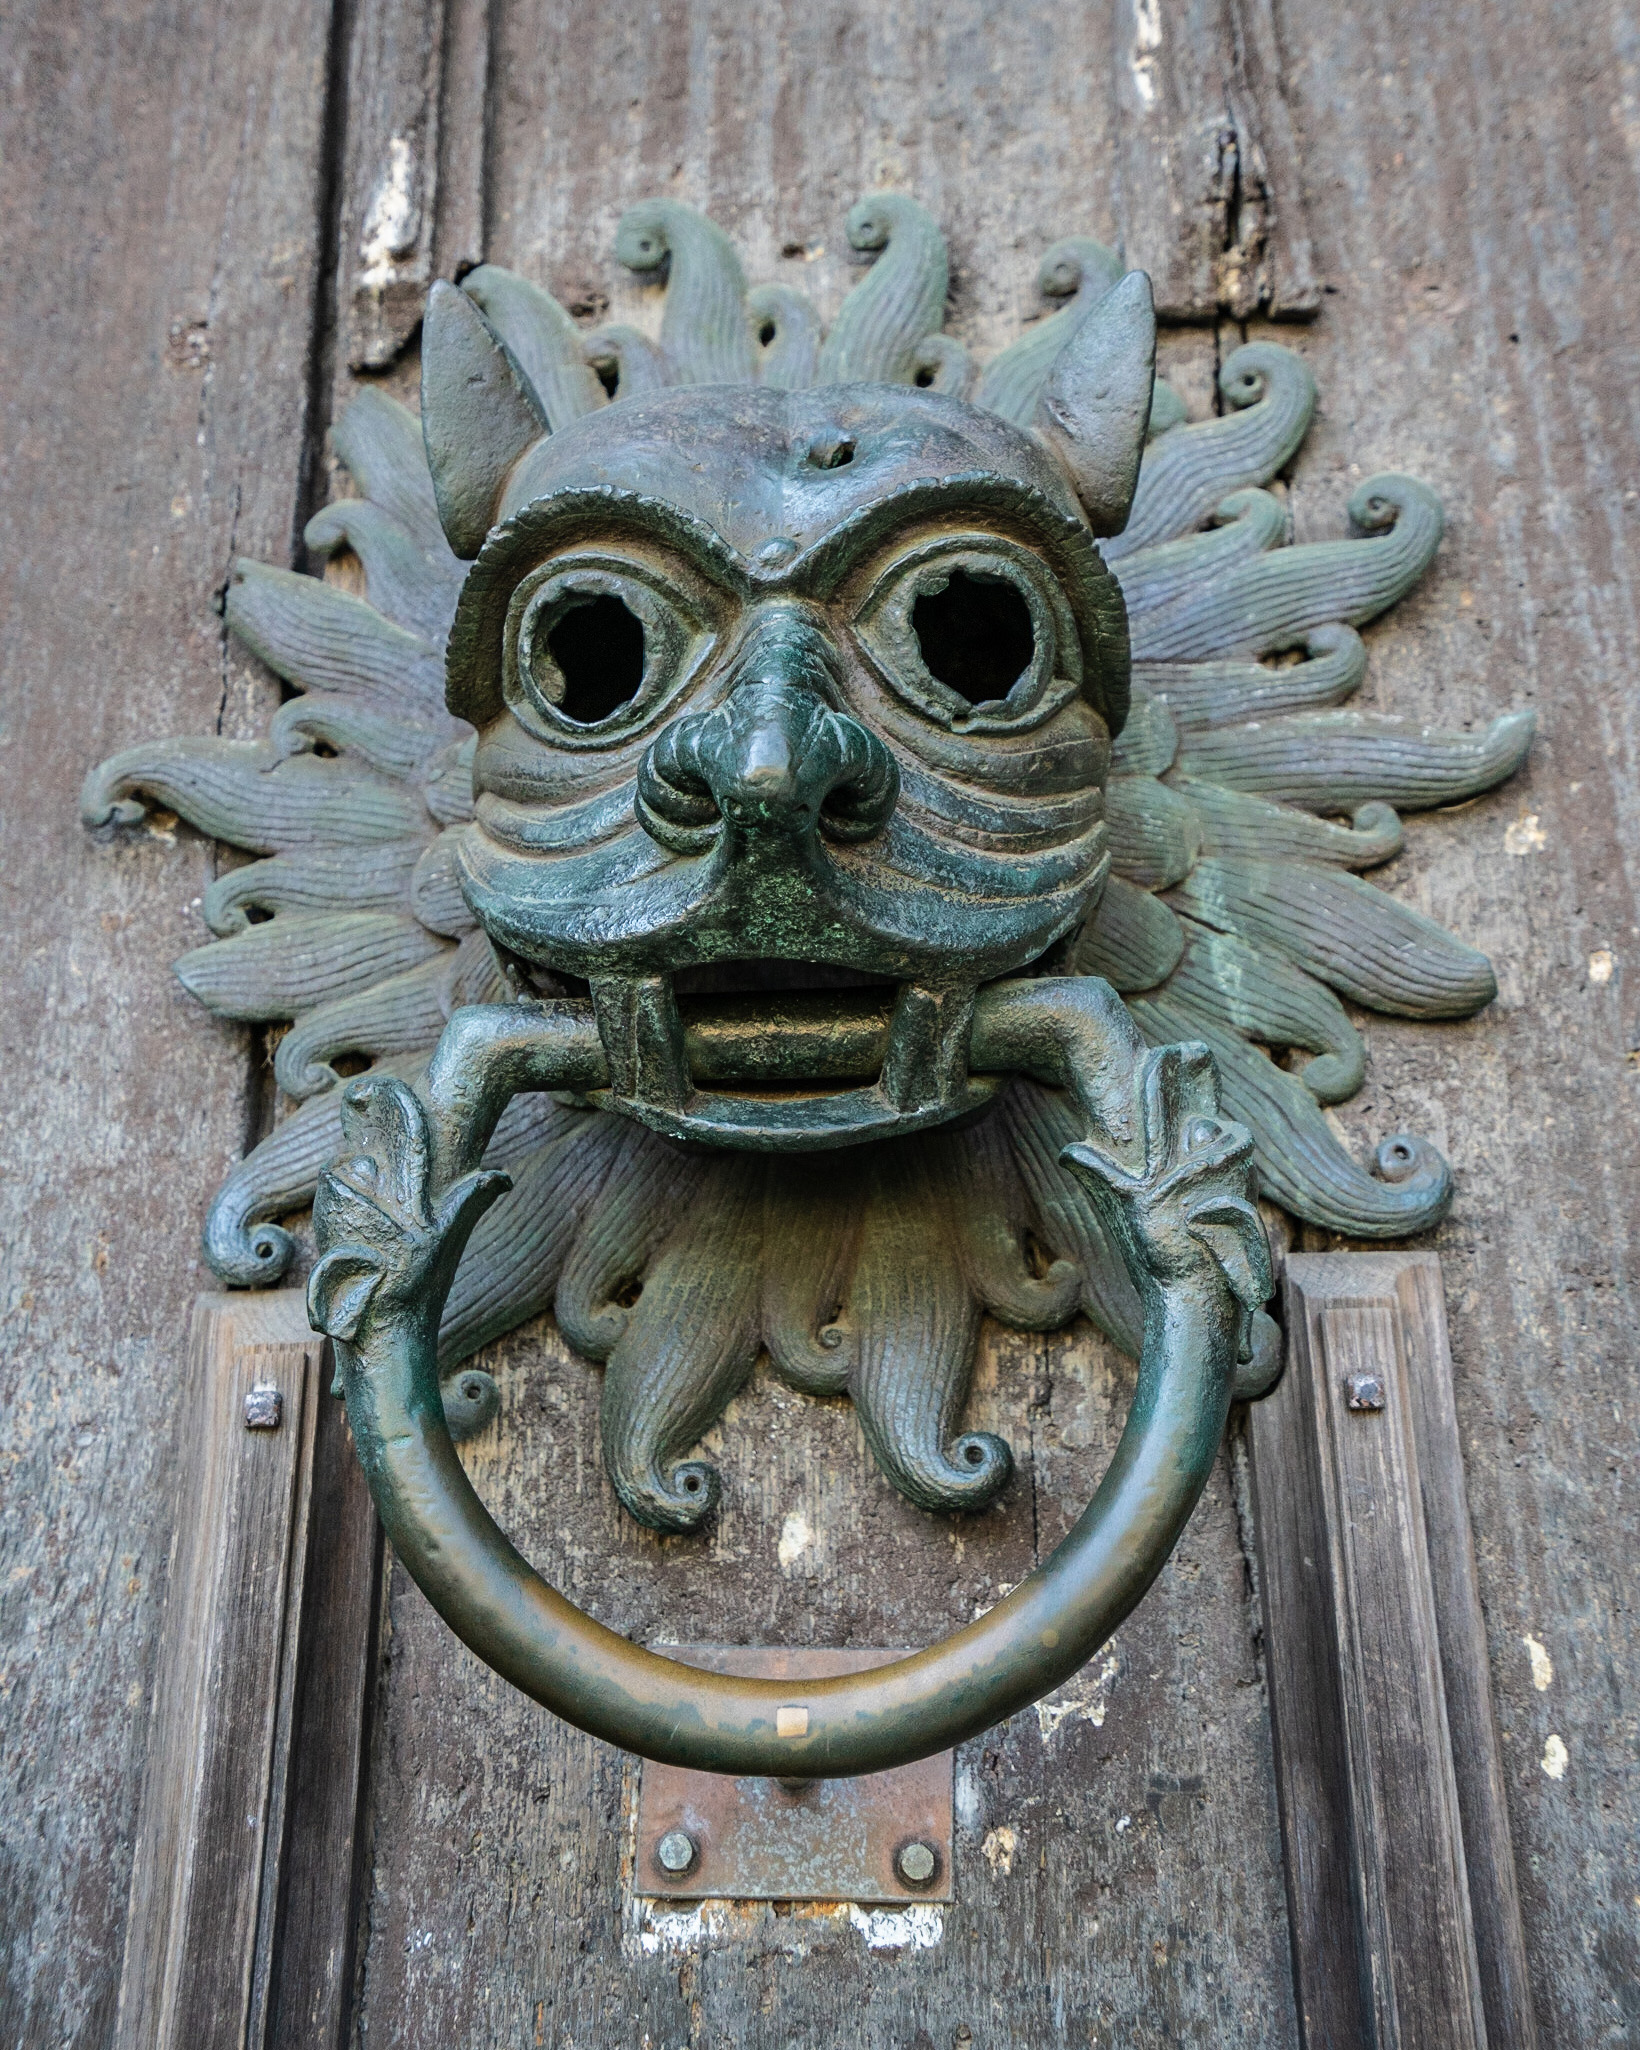 #knocker, #durham, #cathedral, #sanctuary, #mercy, #criminals, #12century, #middleages, #history, #travel